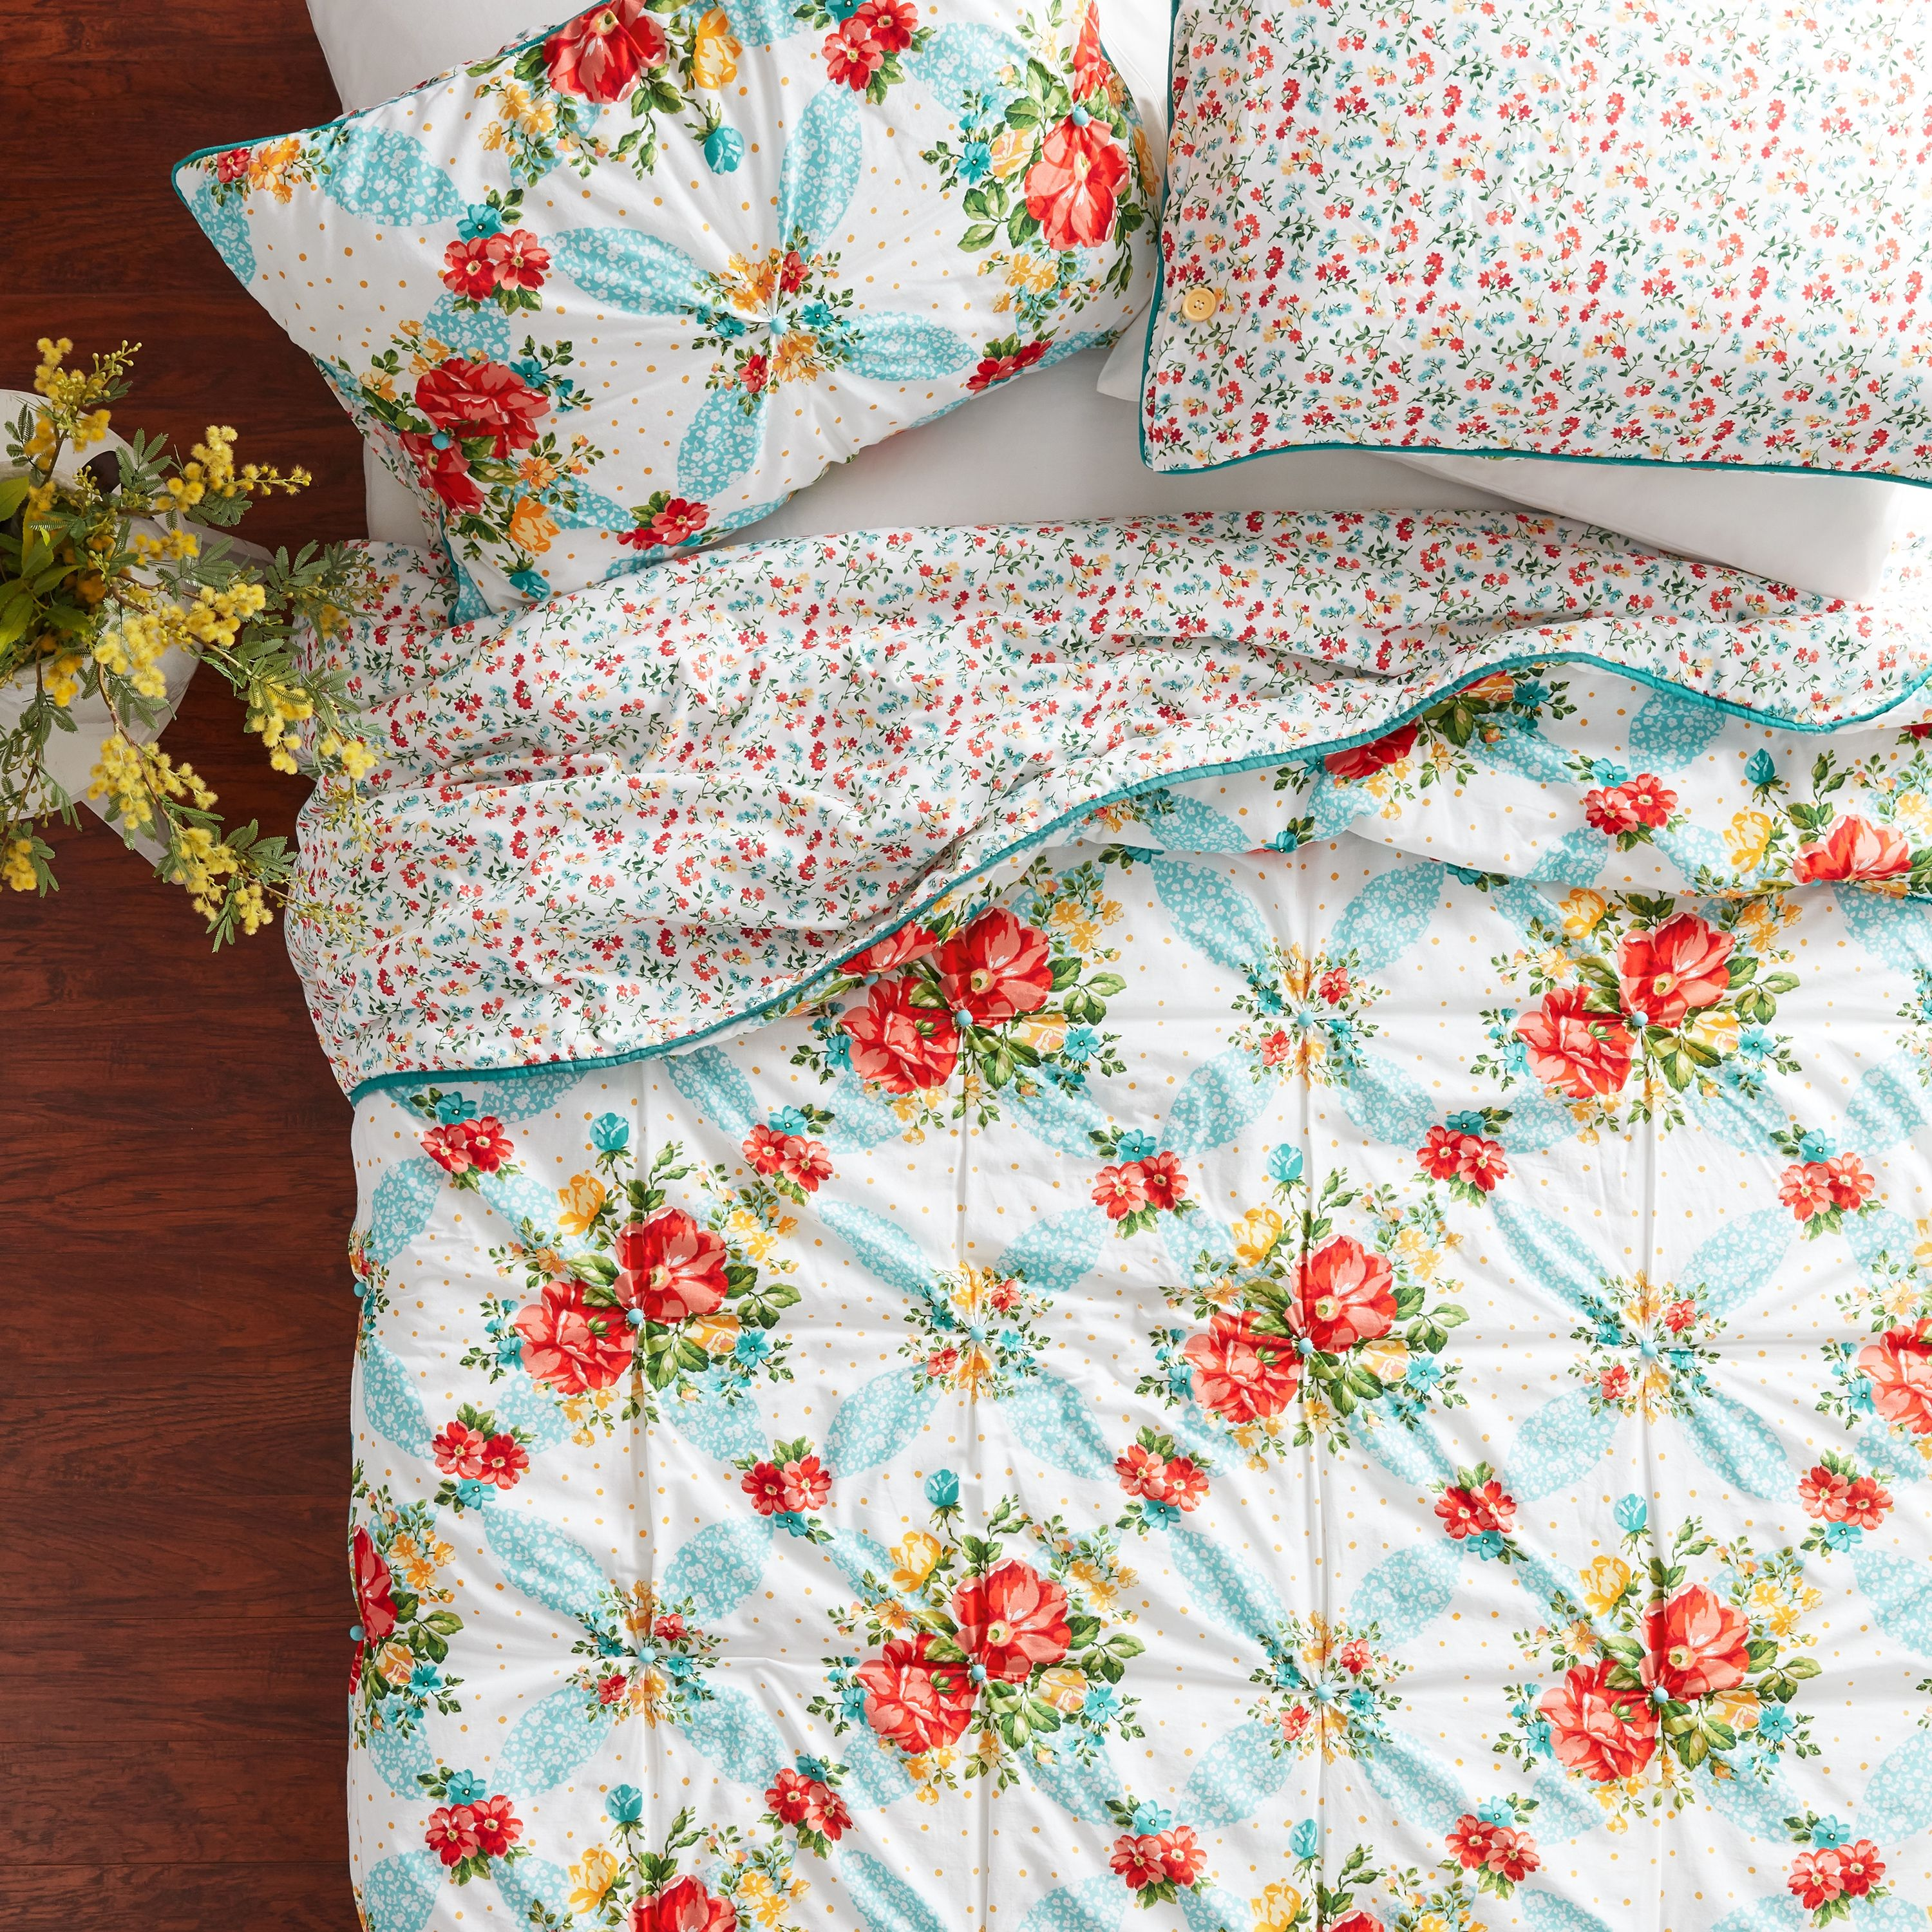 The Pioneer Woman Quilts At Walmart Where To Buy Ree Drummond S Quilt Sets